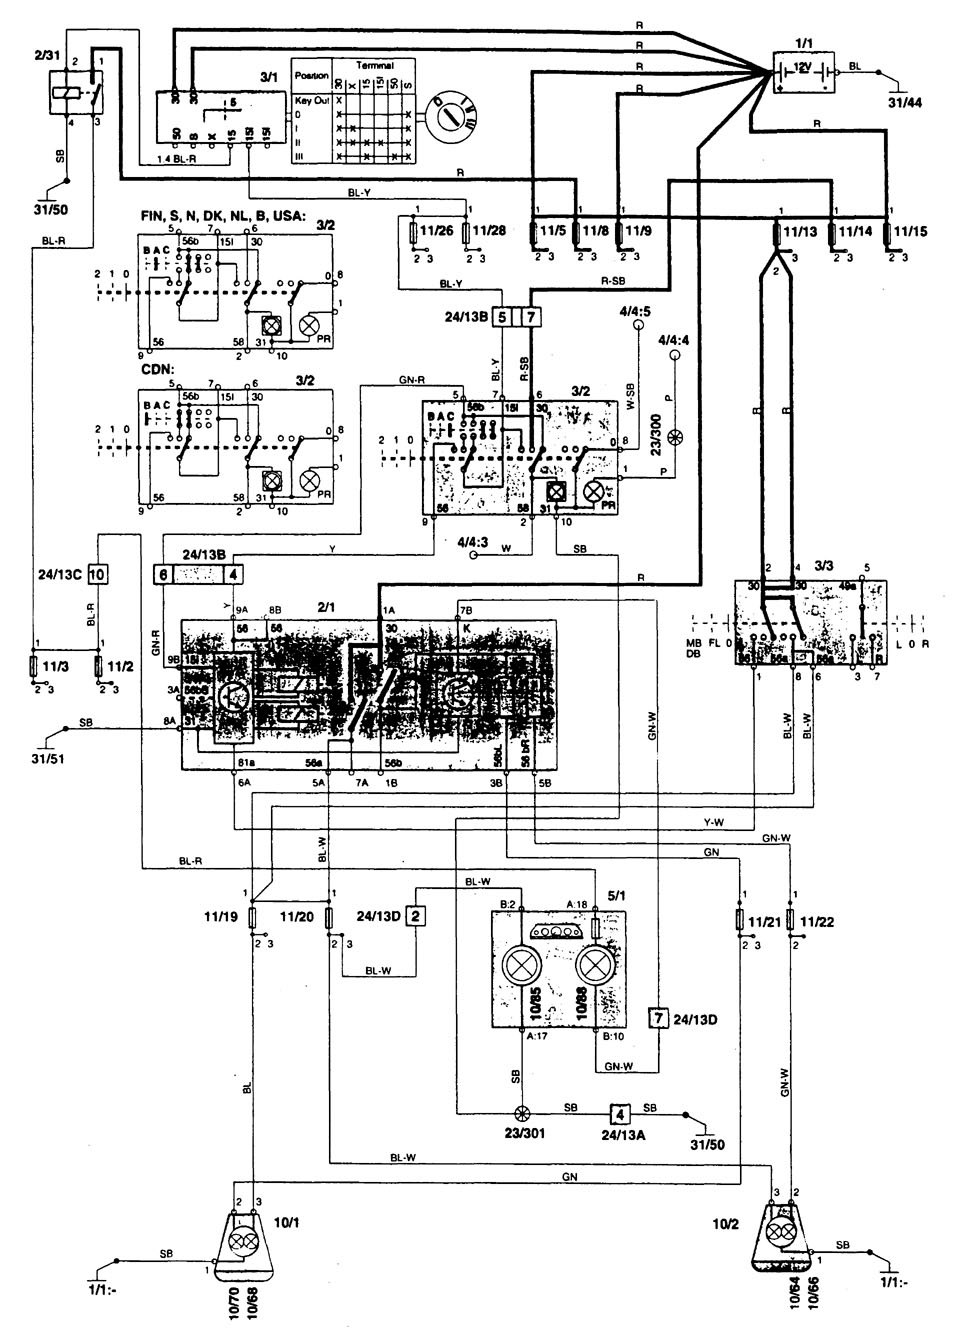 [DIAGRAM] Volvo 850 1995 Electrical Wiring Diagram Instant